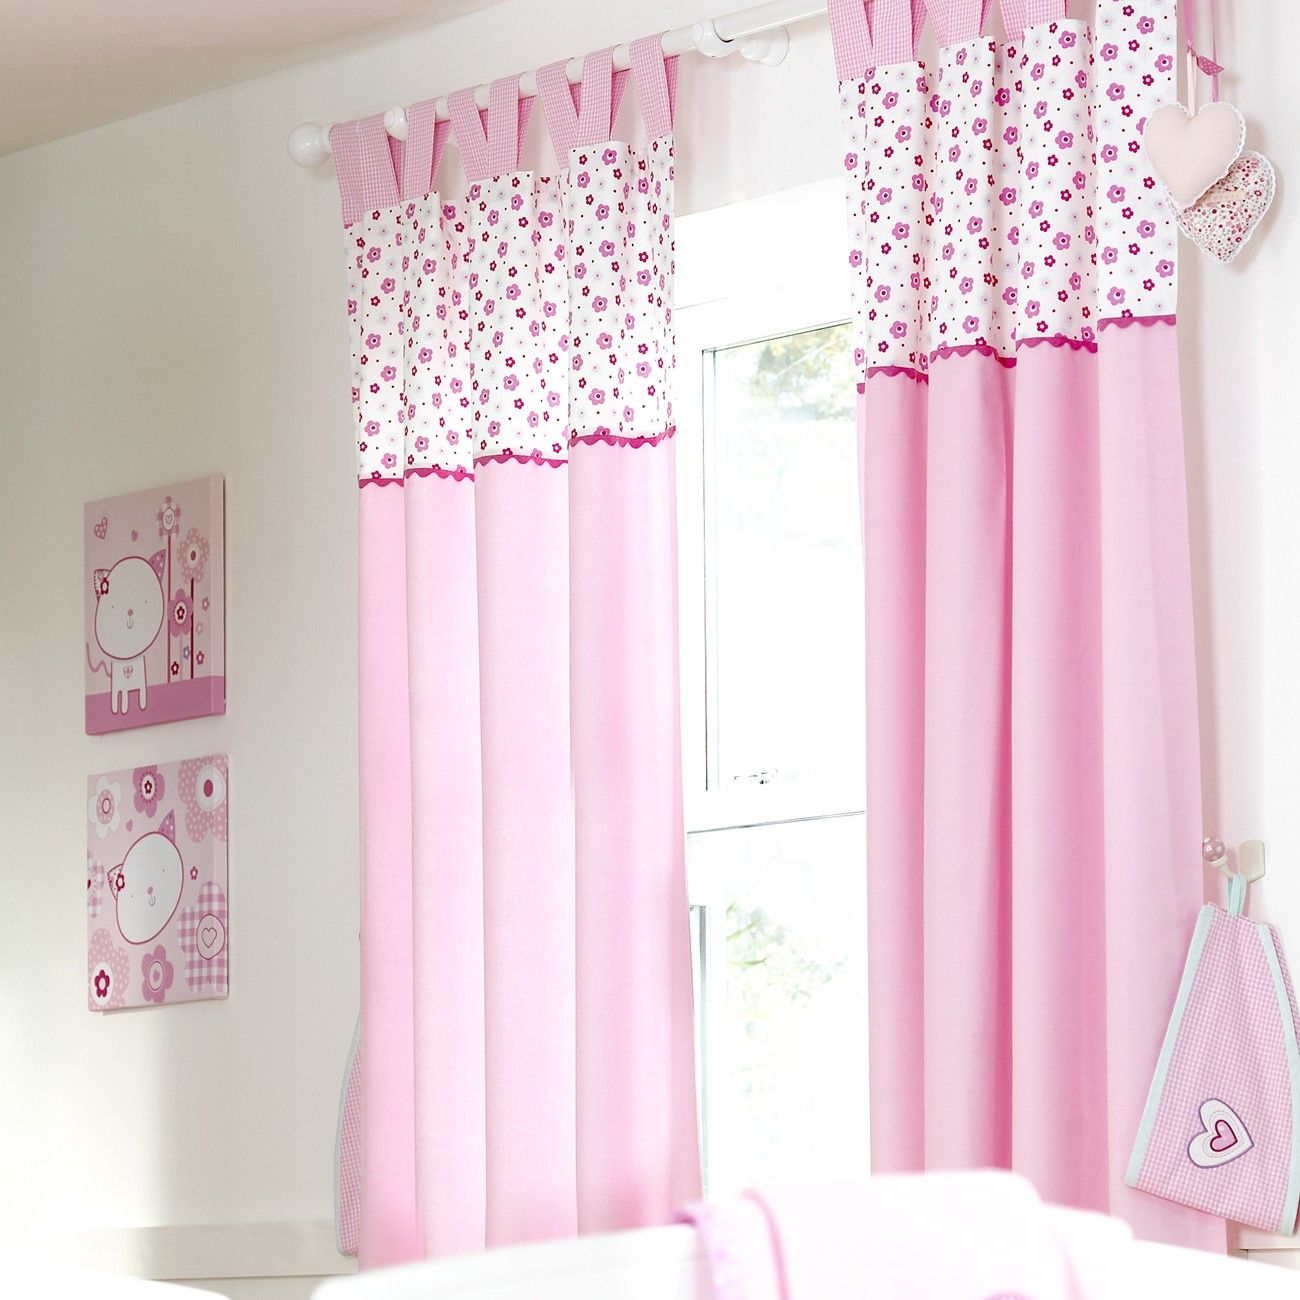 Baby Nursery Curtains Pink Curtains Kids Curtains Pair: Baby Girls Curtains, Baby Girls Tab Top Curtains, Pink